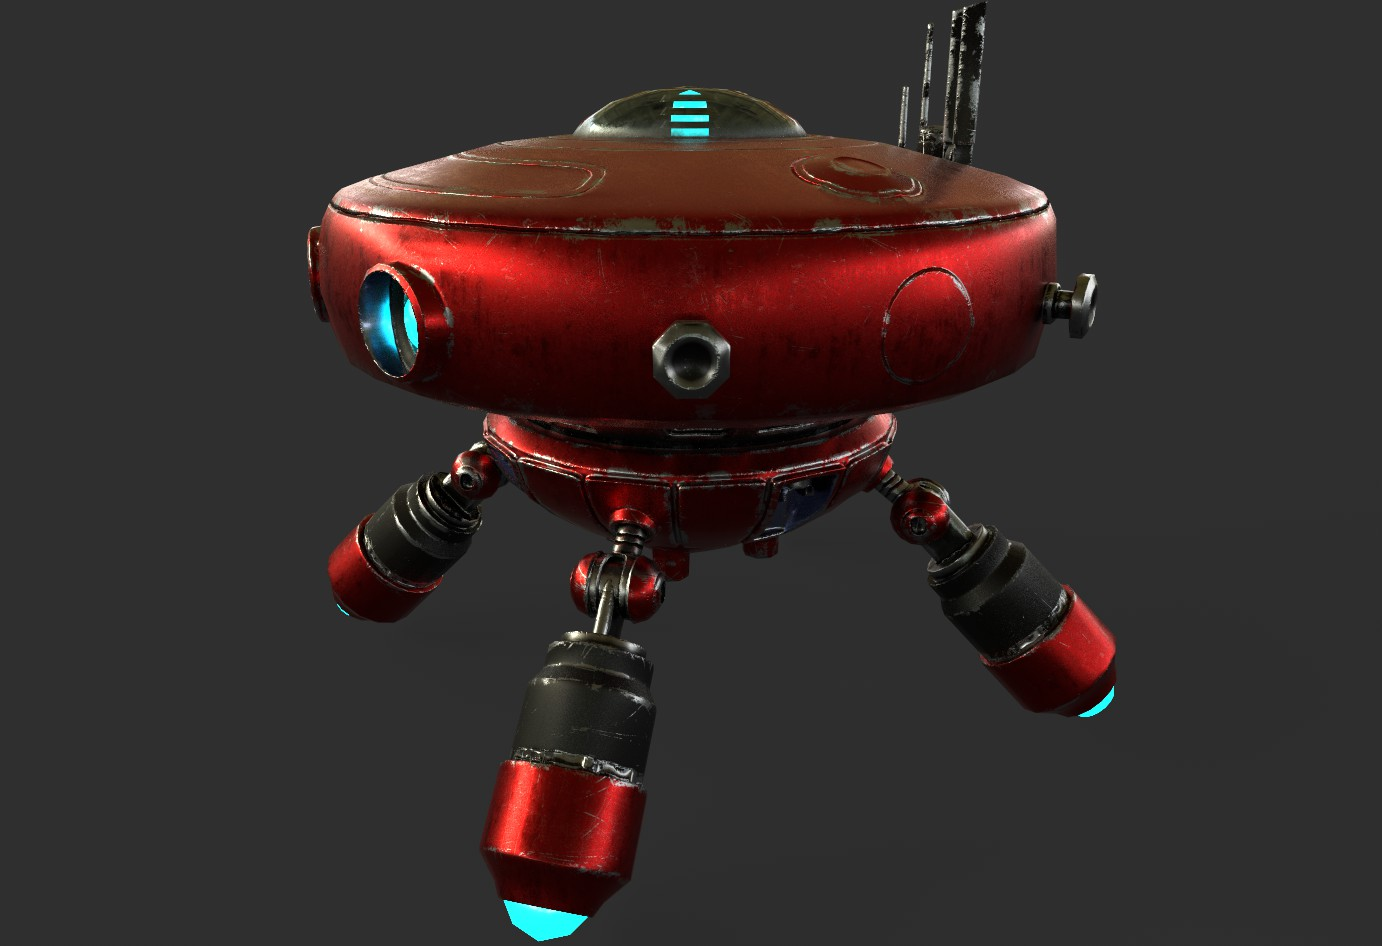 robot boc662 3d model 3ds max 3ds project fbx obj 293436